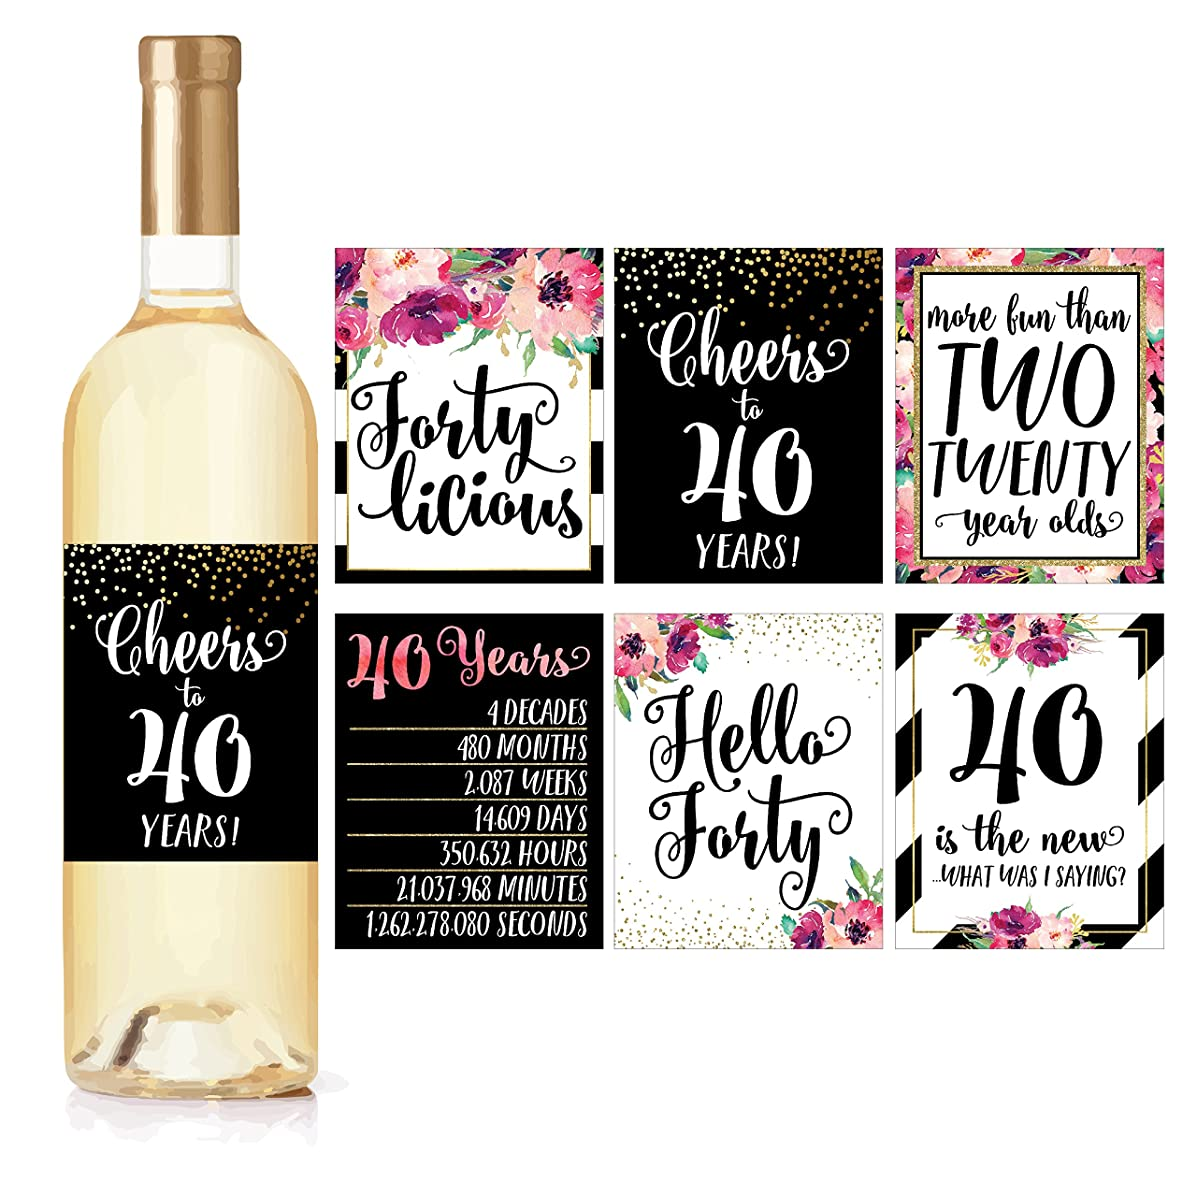 6 40th Birthday Wine Bottle Labels or Stickers Present, 1978 Bday Milestone Gifts For Her Women, Cheers to 40 Years, Funny Fortylicious Pink Black Gold Party Decorations For Friend, Wife, Girl, Mom